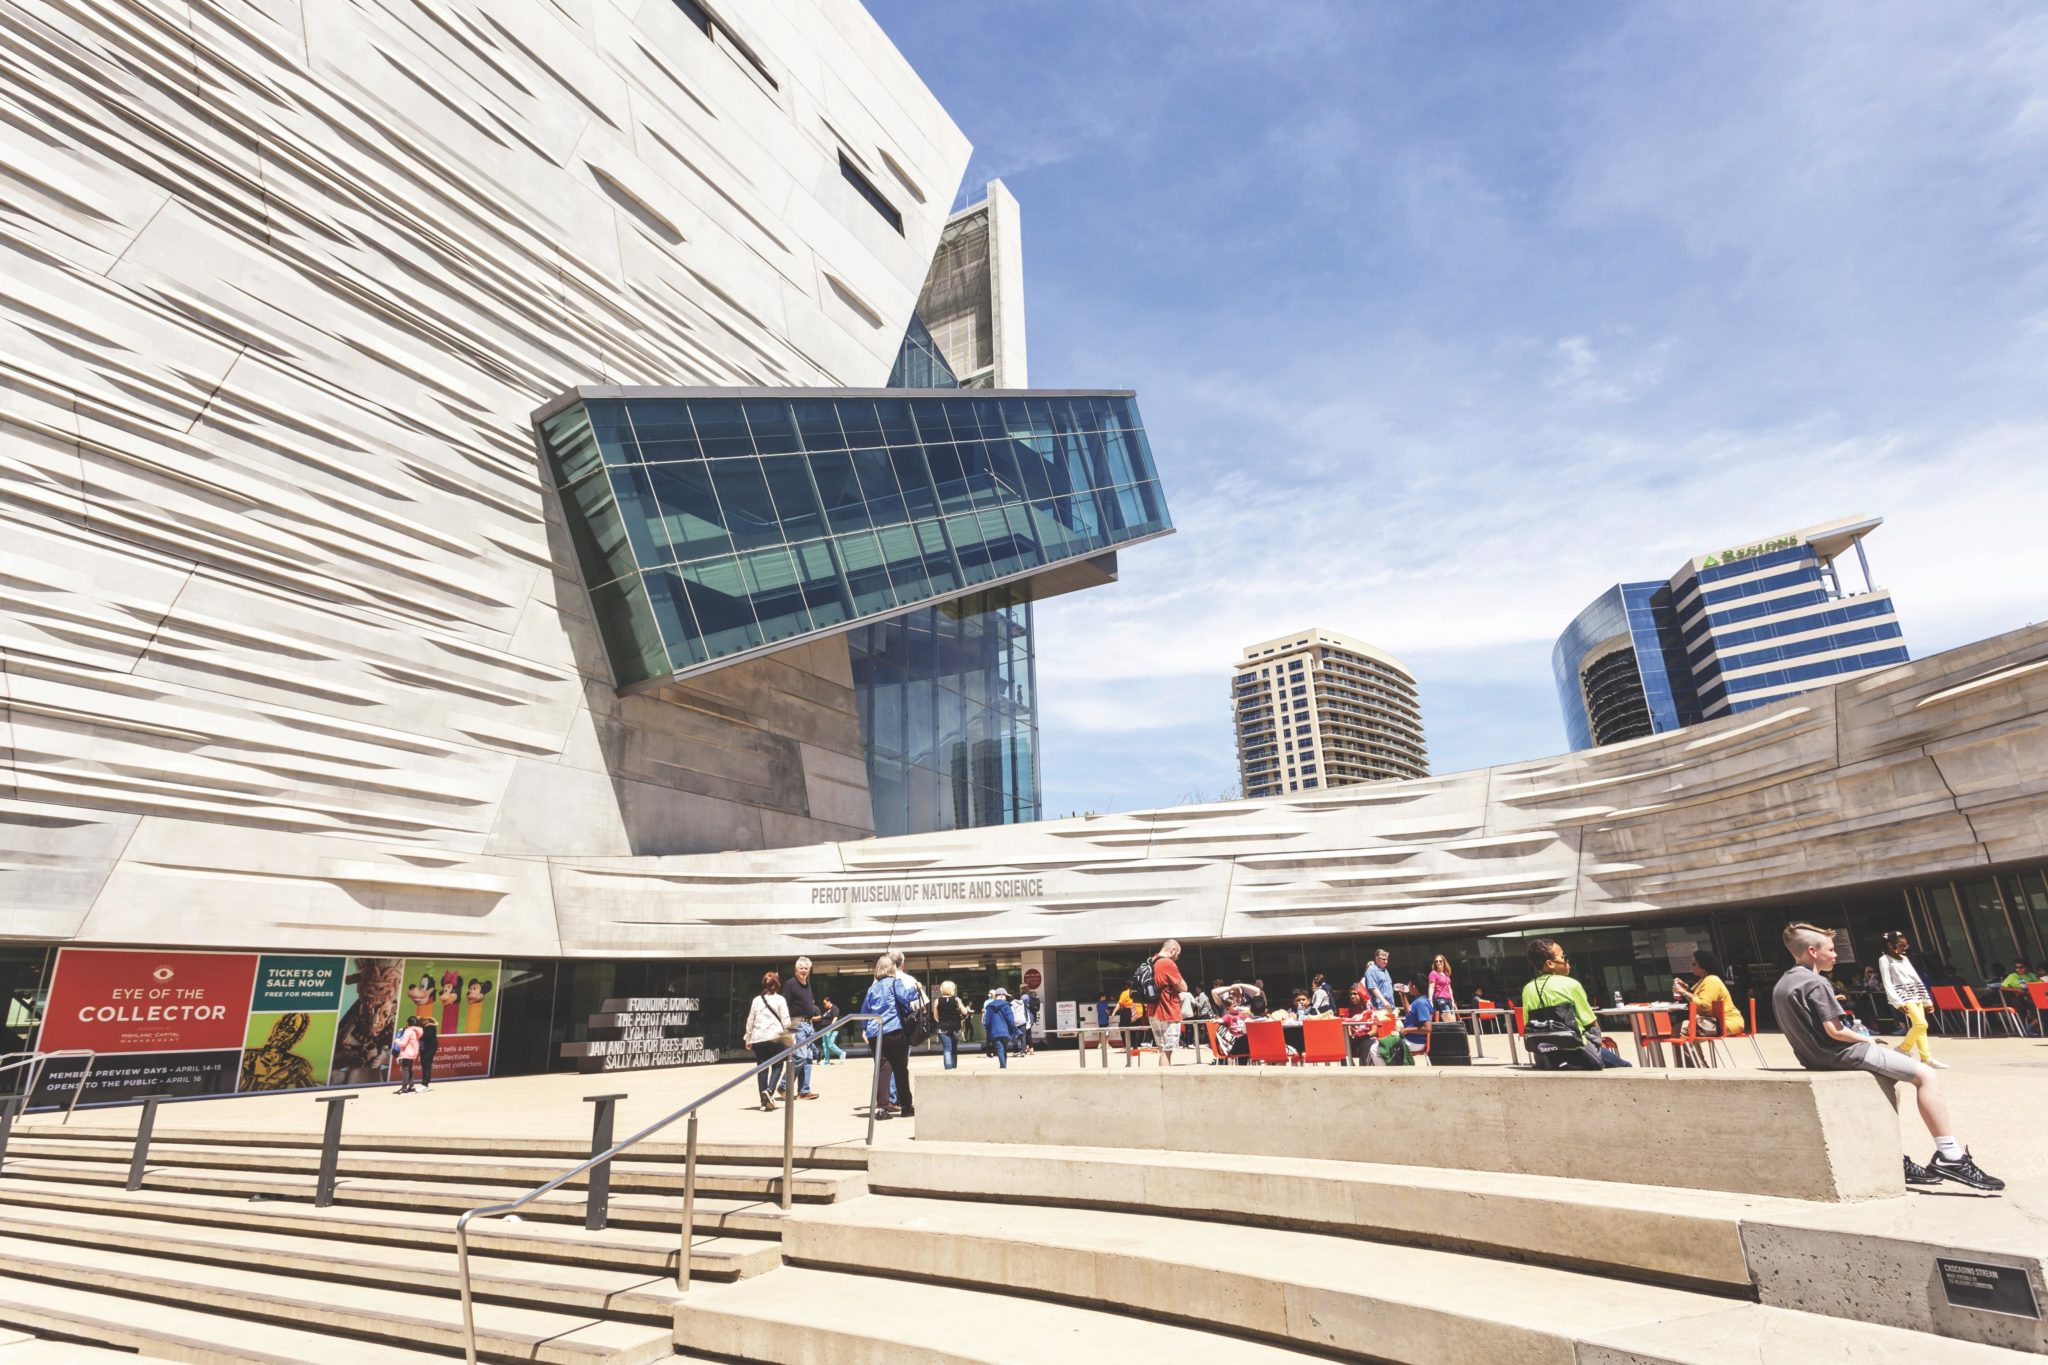 The Perot Museum of Nature and Science in Dallas has a modern exterior with people enjoying a beautiful sunny day.